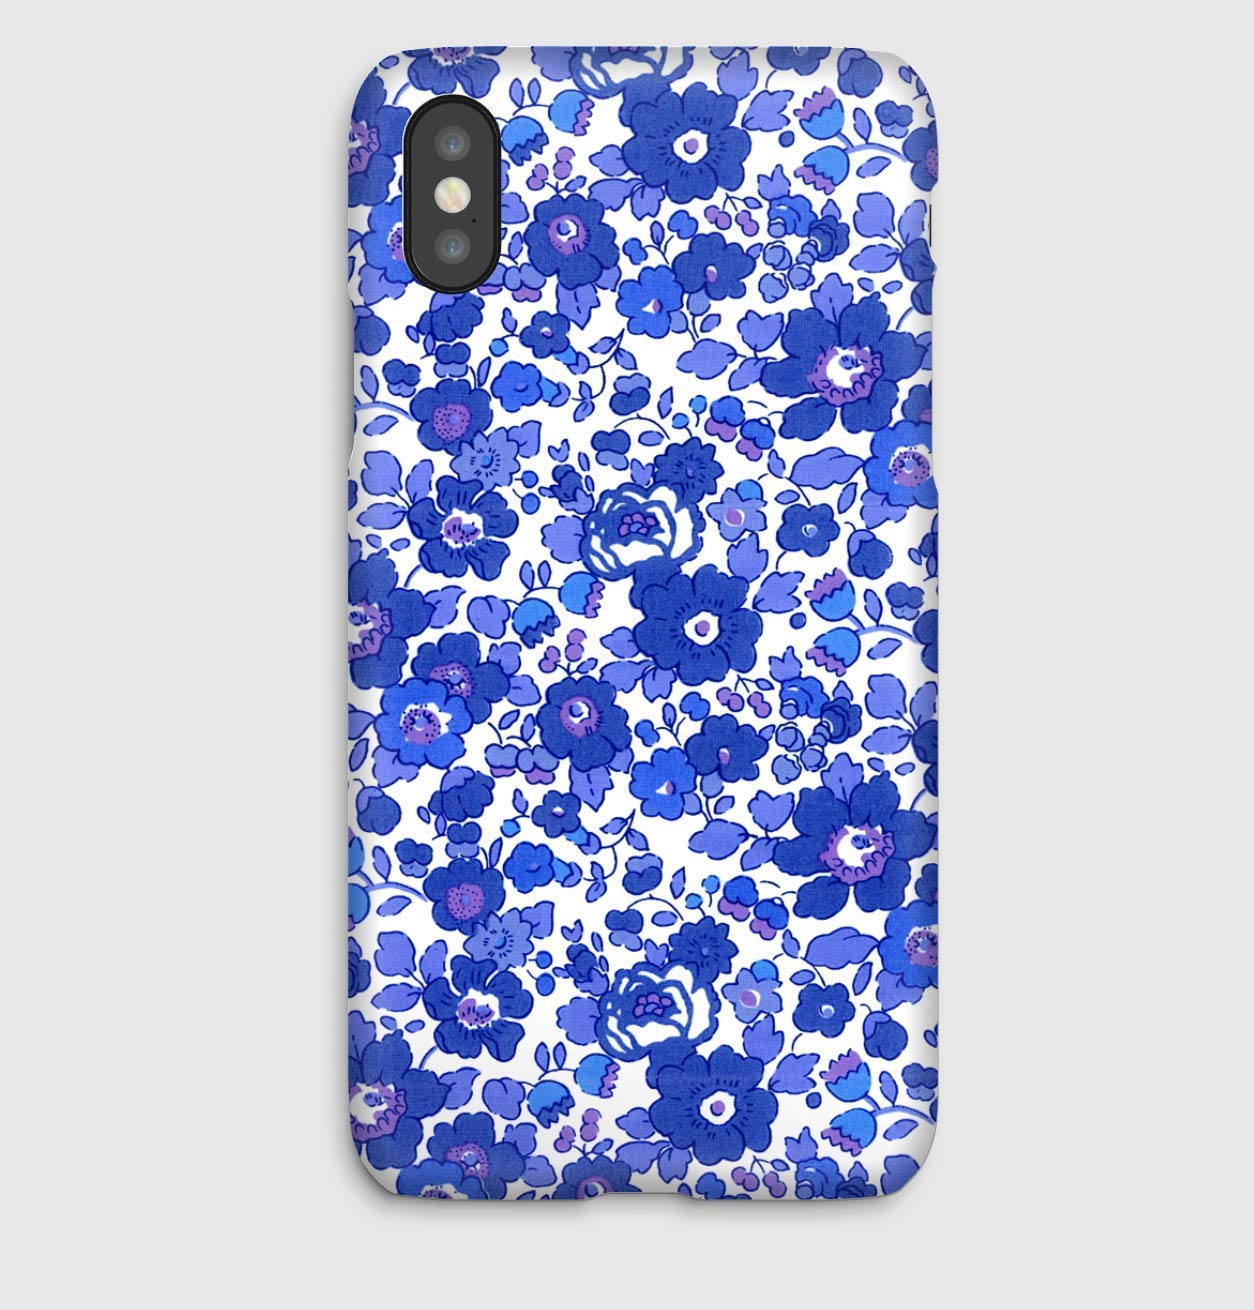 Liberty BETSY DARK BLUE, coque pour iPhone XS, XS Max, XR, X, 8, 8+, 7, 7+, 6S, 6, 6S+, 6+, 5C, 5, 5S, 5SE, 4S, 4,